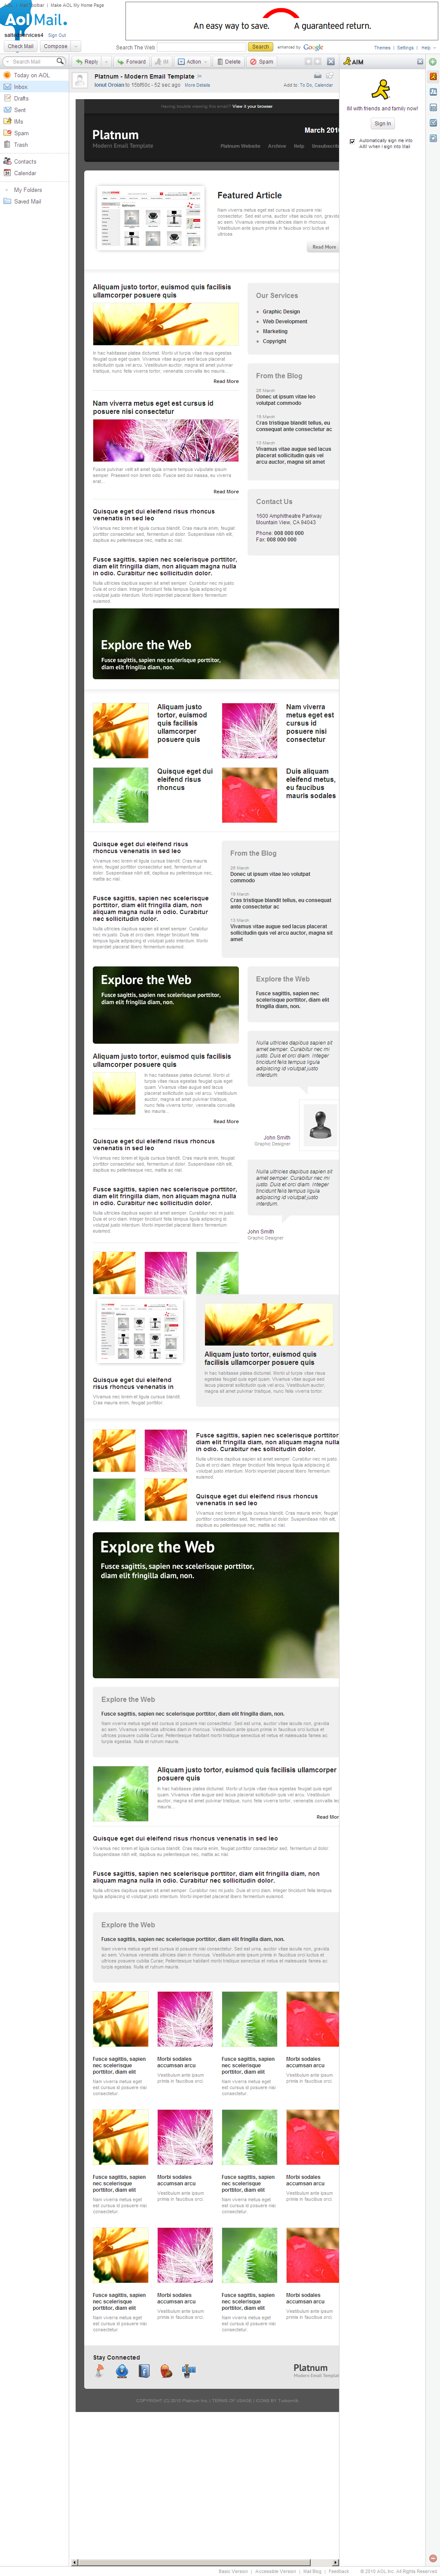 Platnum Email Template, 6 Layouts, 8 Colors - AOL Mail - All elements listed.